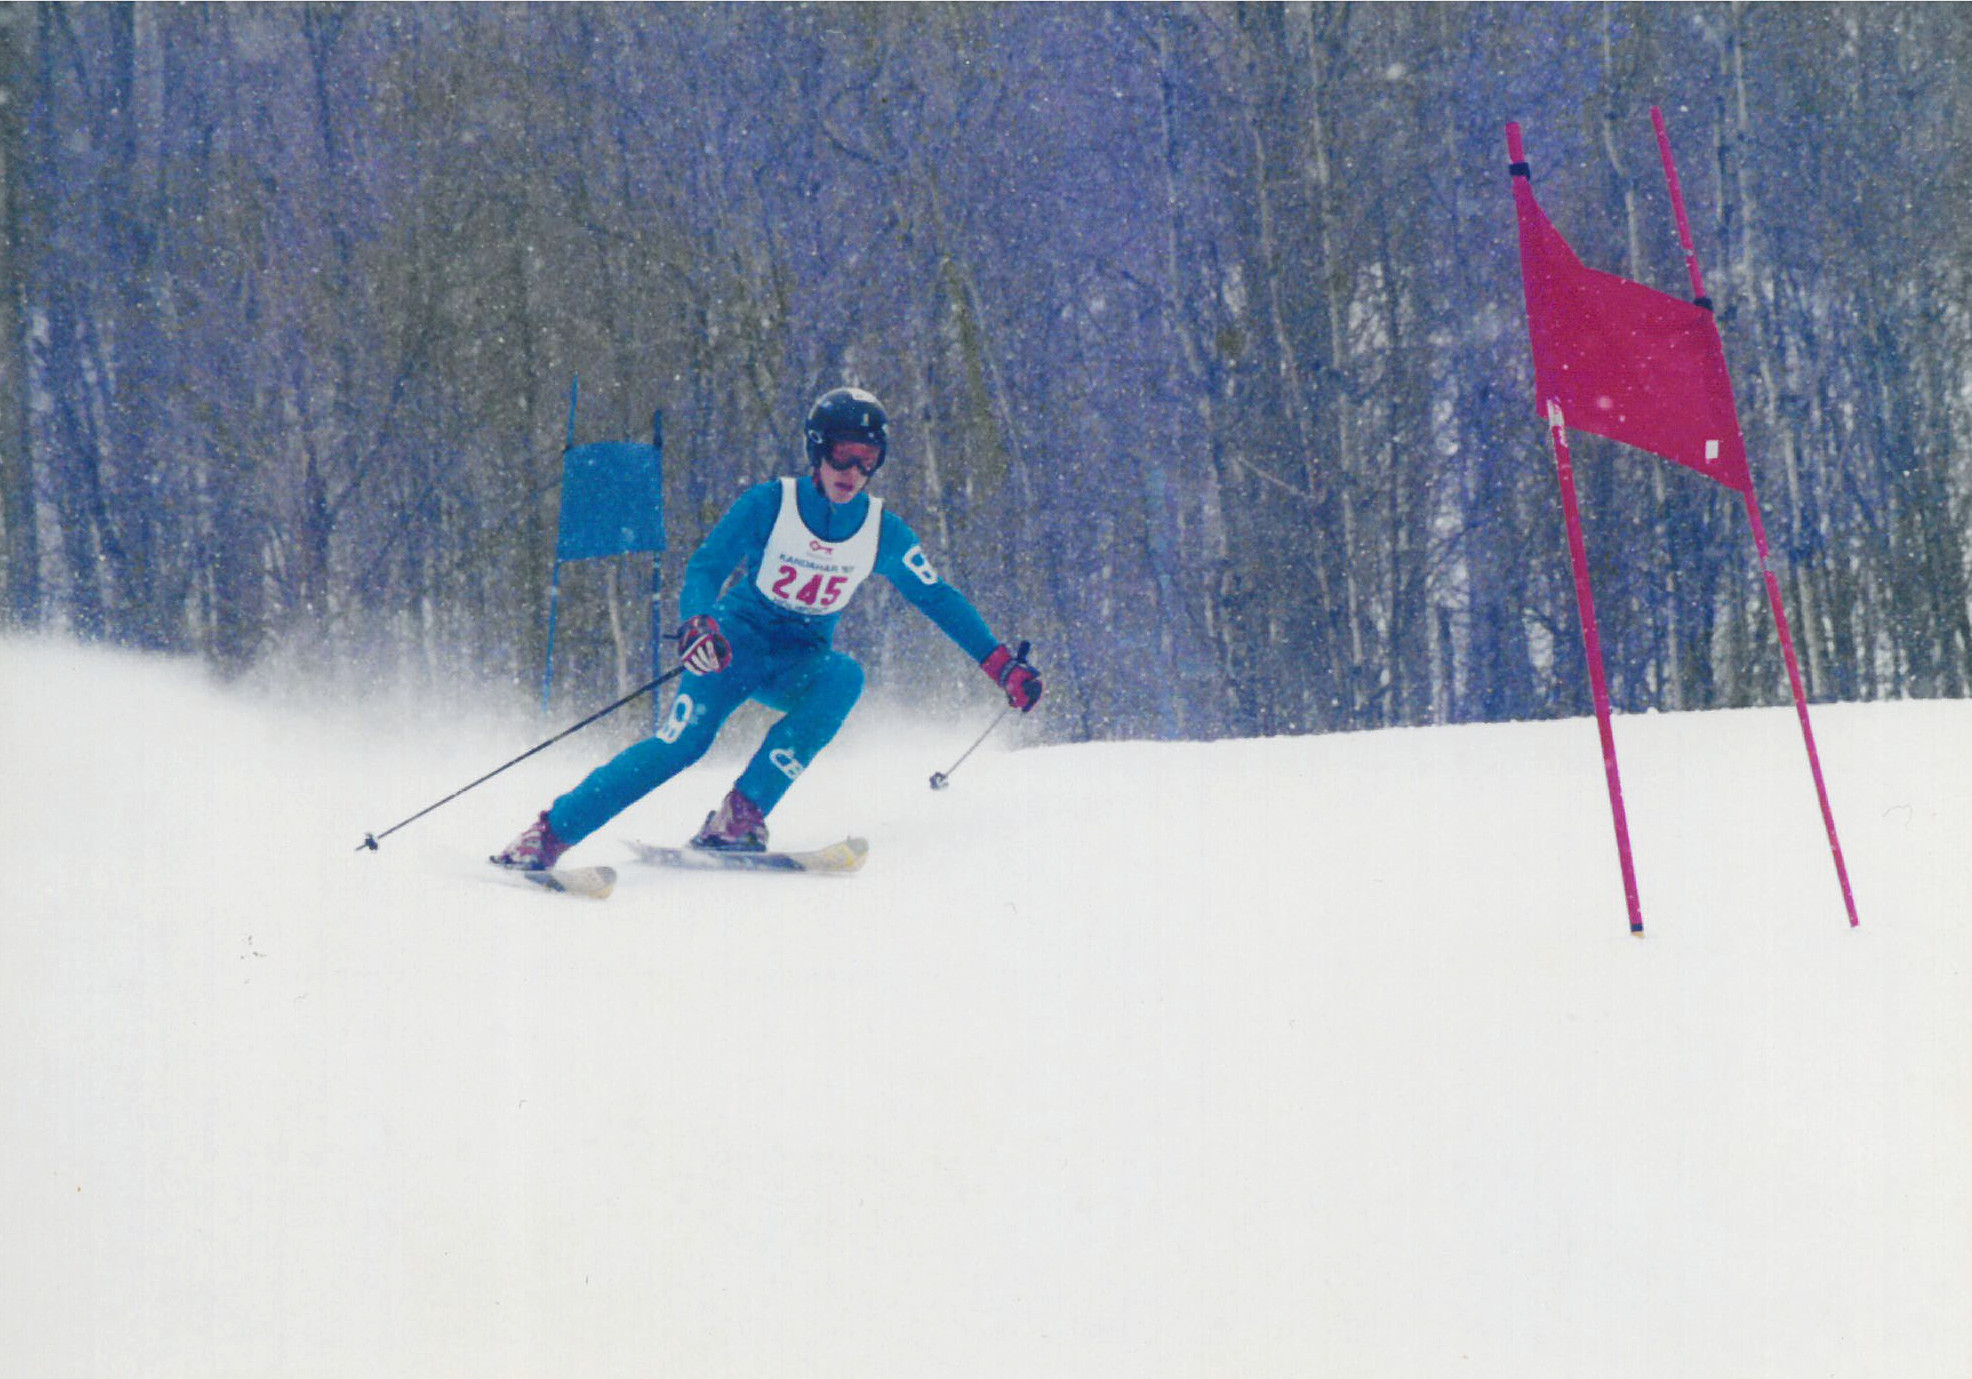 jn_skiing_13yrs.jpg